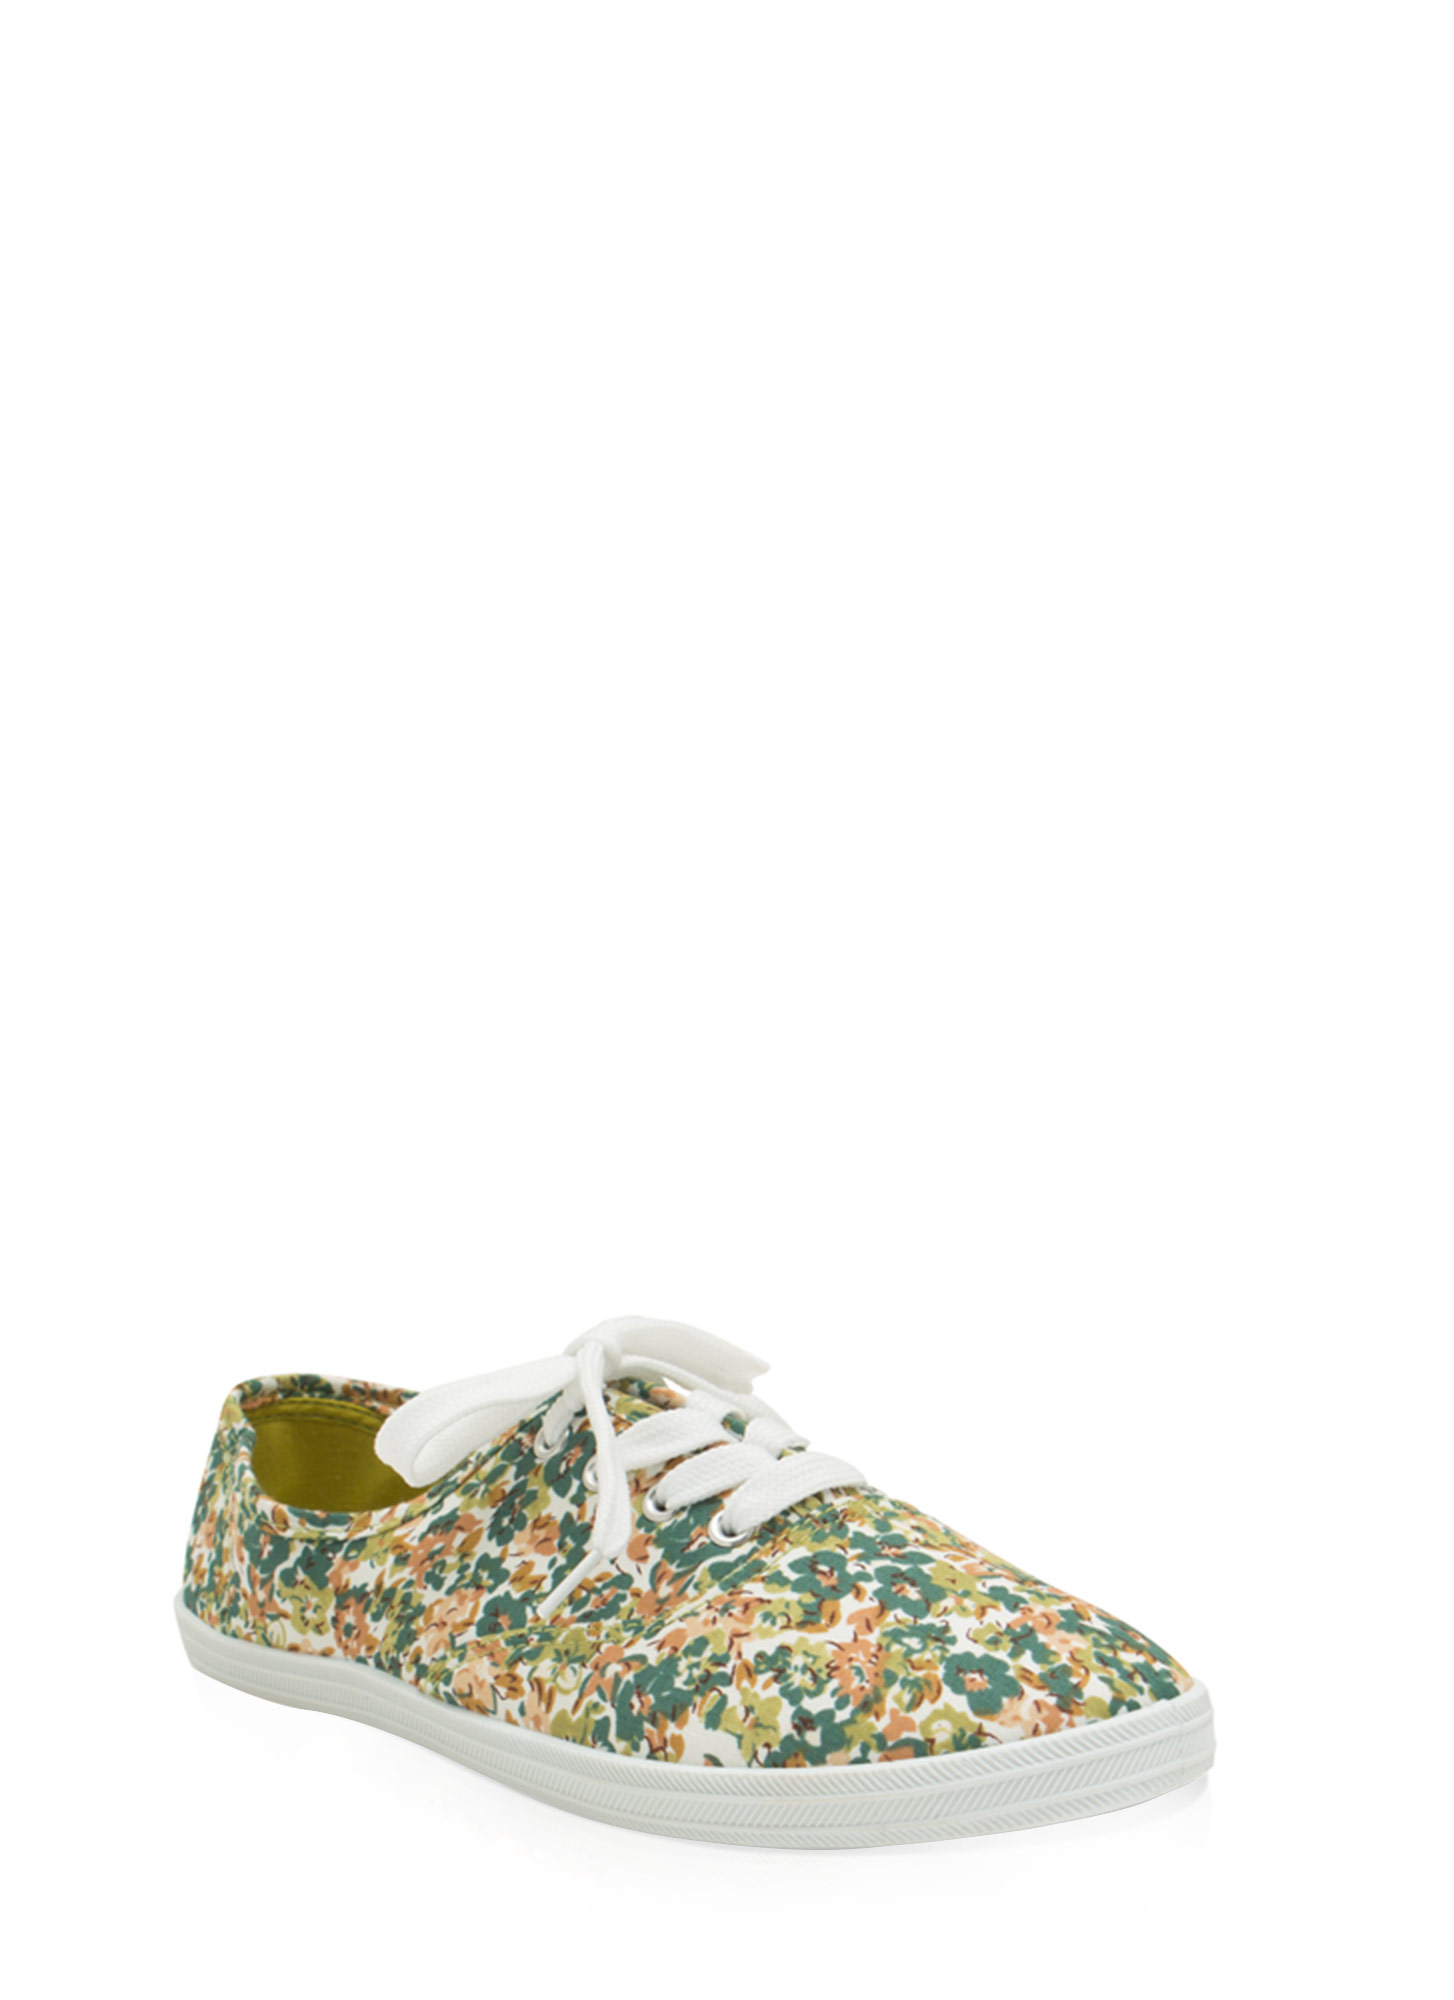 Floral Daze Lace-Up Sneakers GREENMULTI